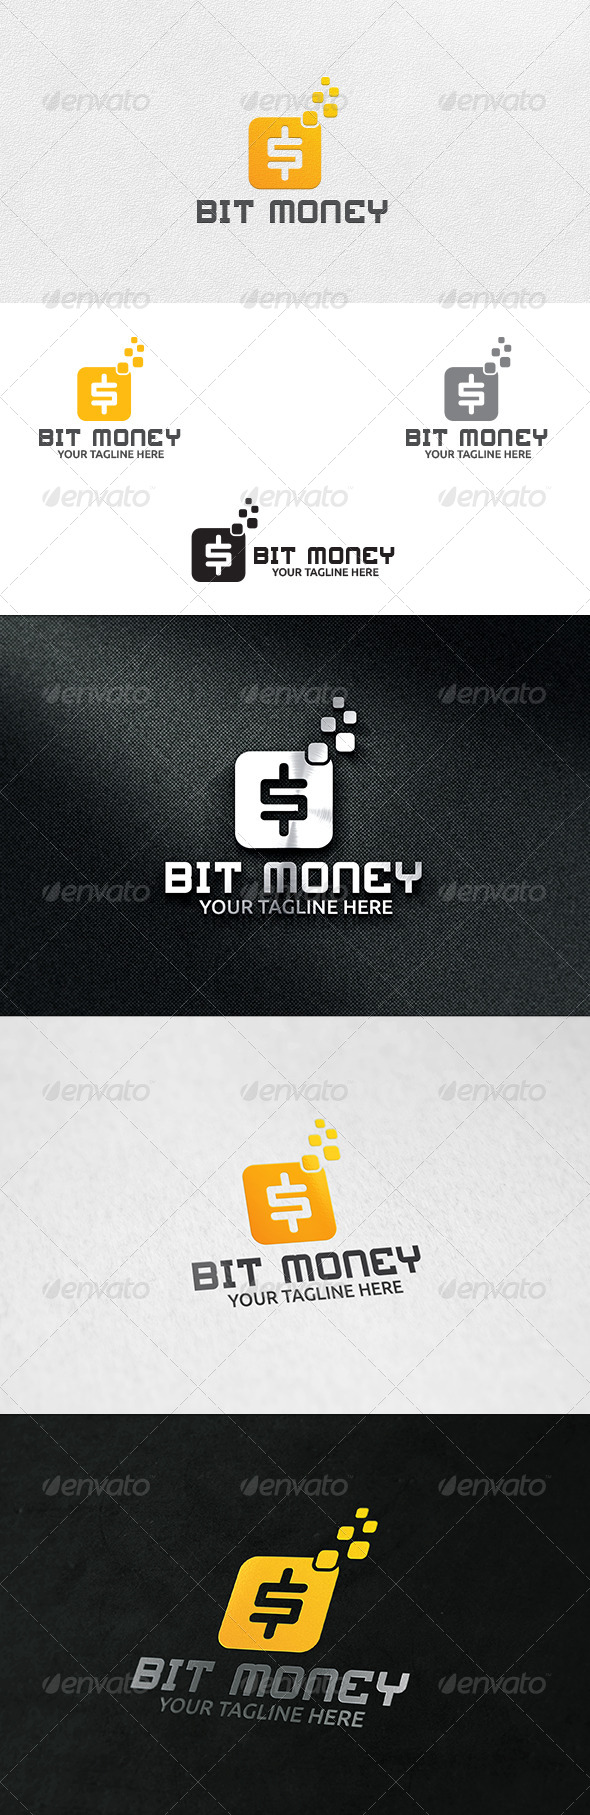 GraphicRiver Bit Money Logo Template 6328445